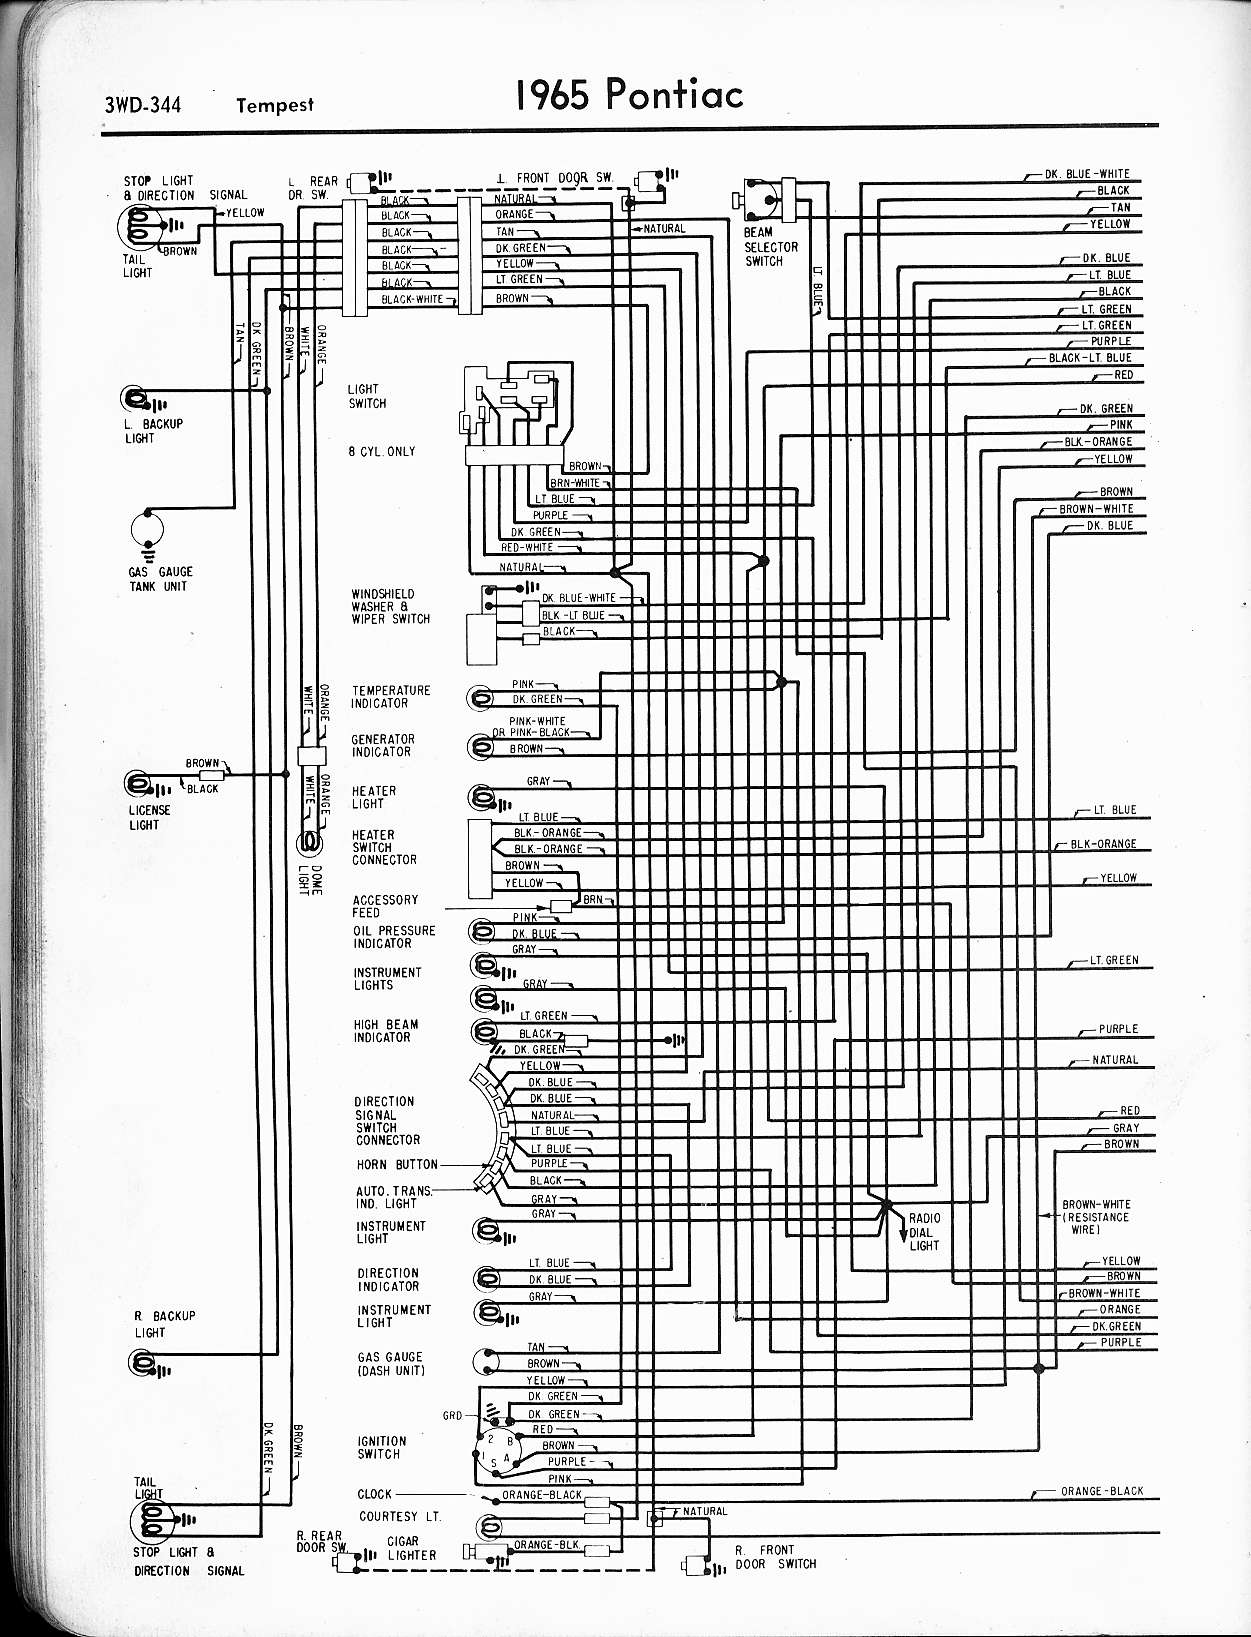 1966 Pontiac Bonneville Wiring Diagram - DIY Wiring Diagrams • on 2006 gto wiring diagram, 1965 gto wiring harness, 2006 grand prix wiring harness, 1964 gto wiring harness, 1970 gto wiring harness, 1968 gto wiring harness,